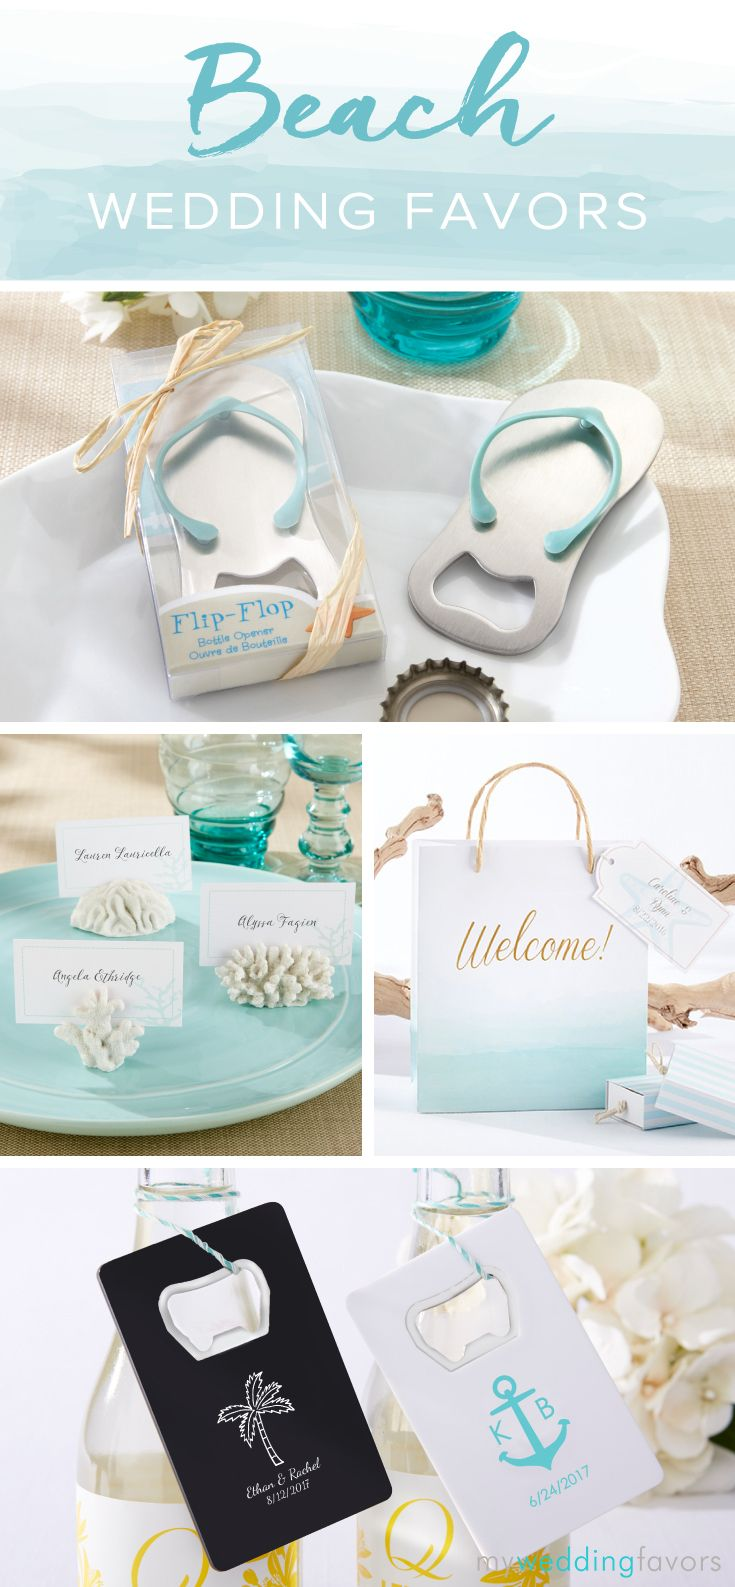 From A Dockside Bridal Shower With Nautical Flair To Sandy Beach Wedding Our Favors And Themed Help You Say Thank